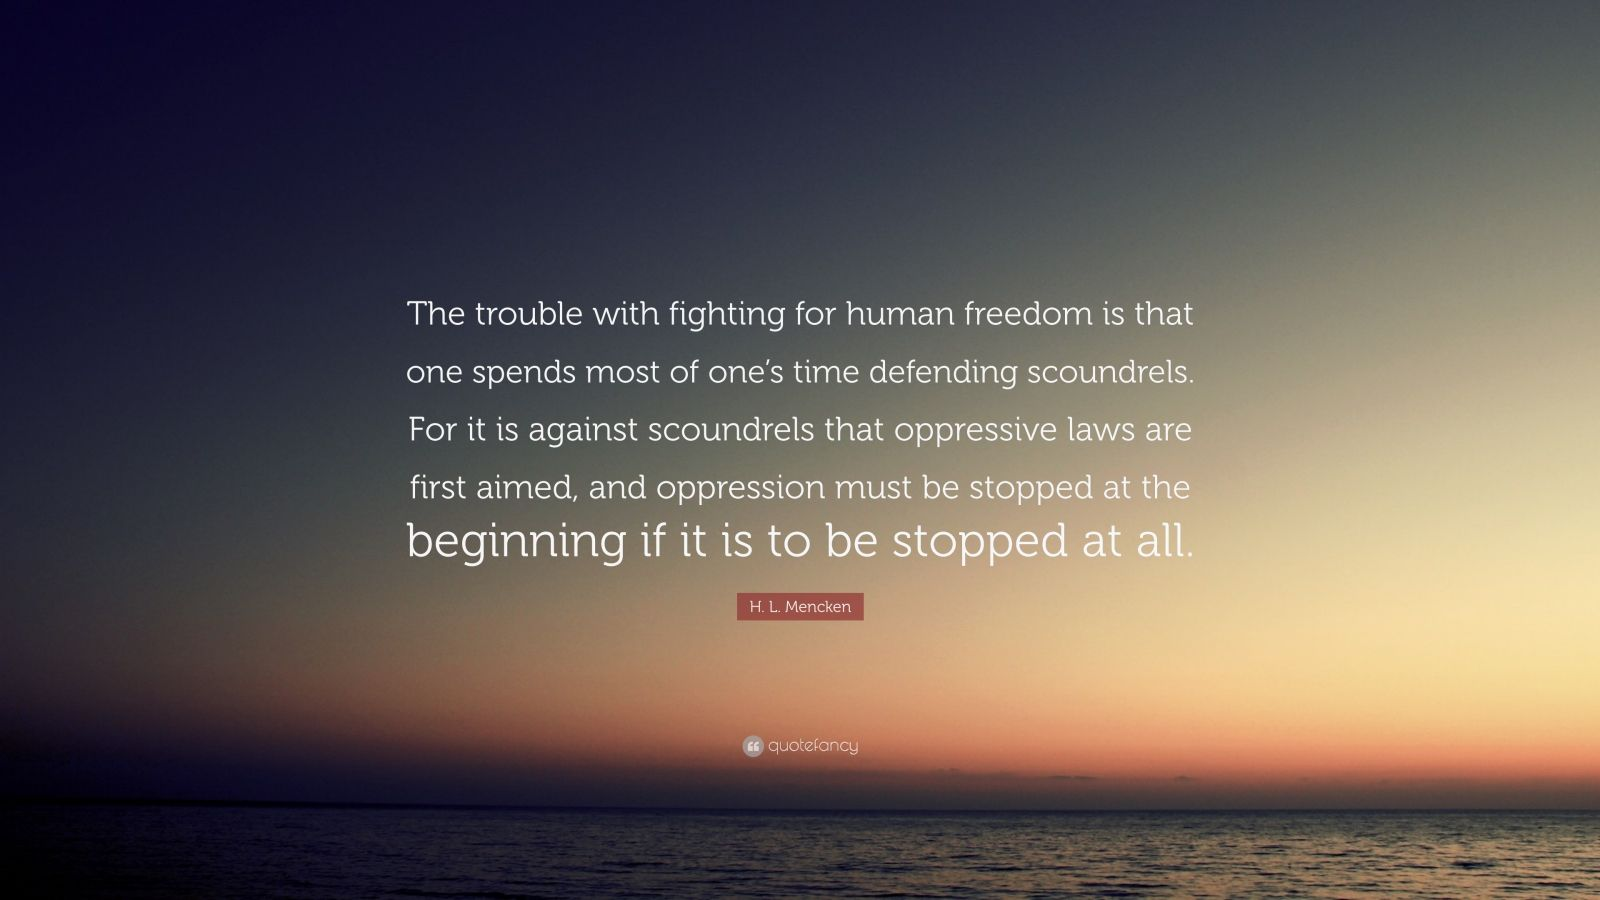 """H. L. Mencken Quote: """"The trouble with fighting for human freedom is that one spends most of one's time defending scoundrels. For it is against scoundrels that oppressive laws are first aimed, and oppression must be stopped at the beginning if it is to be stopped at all."""""""